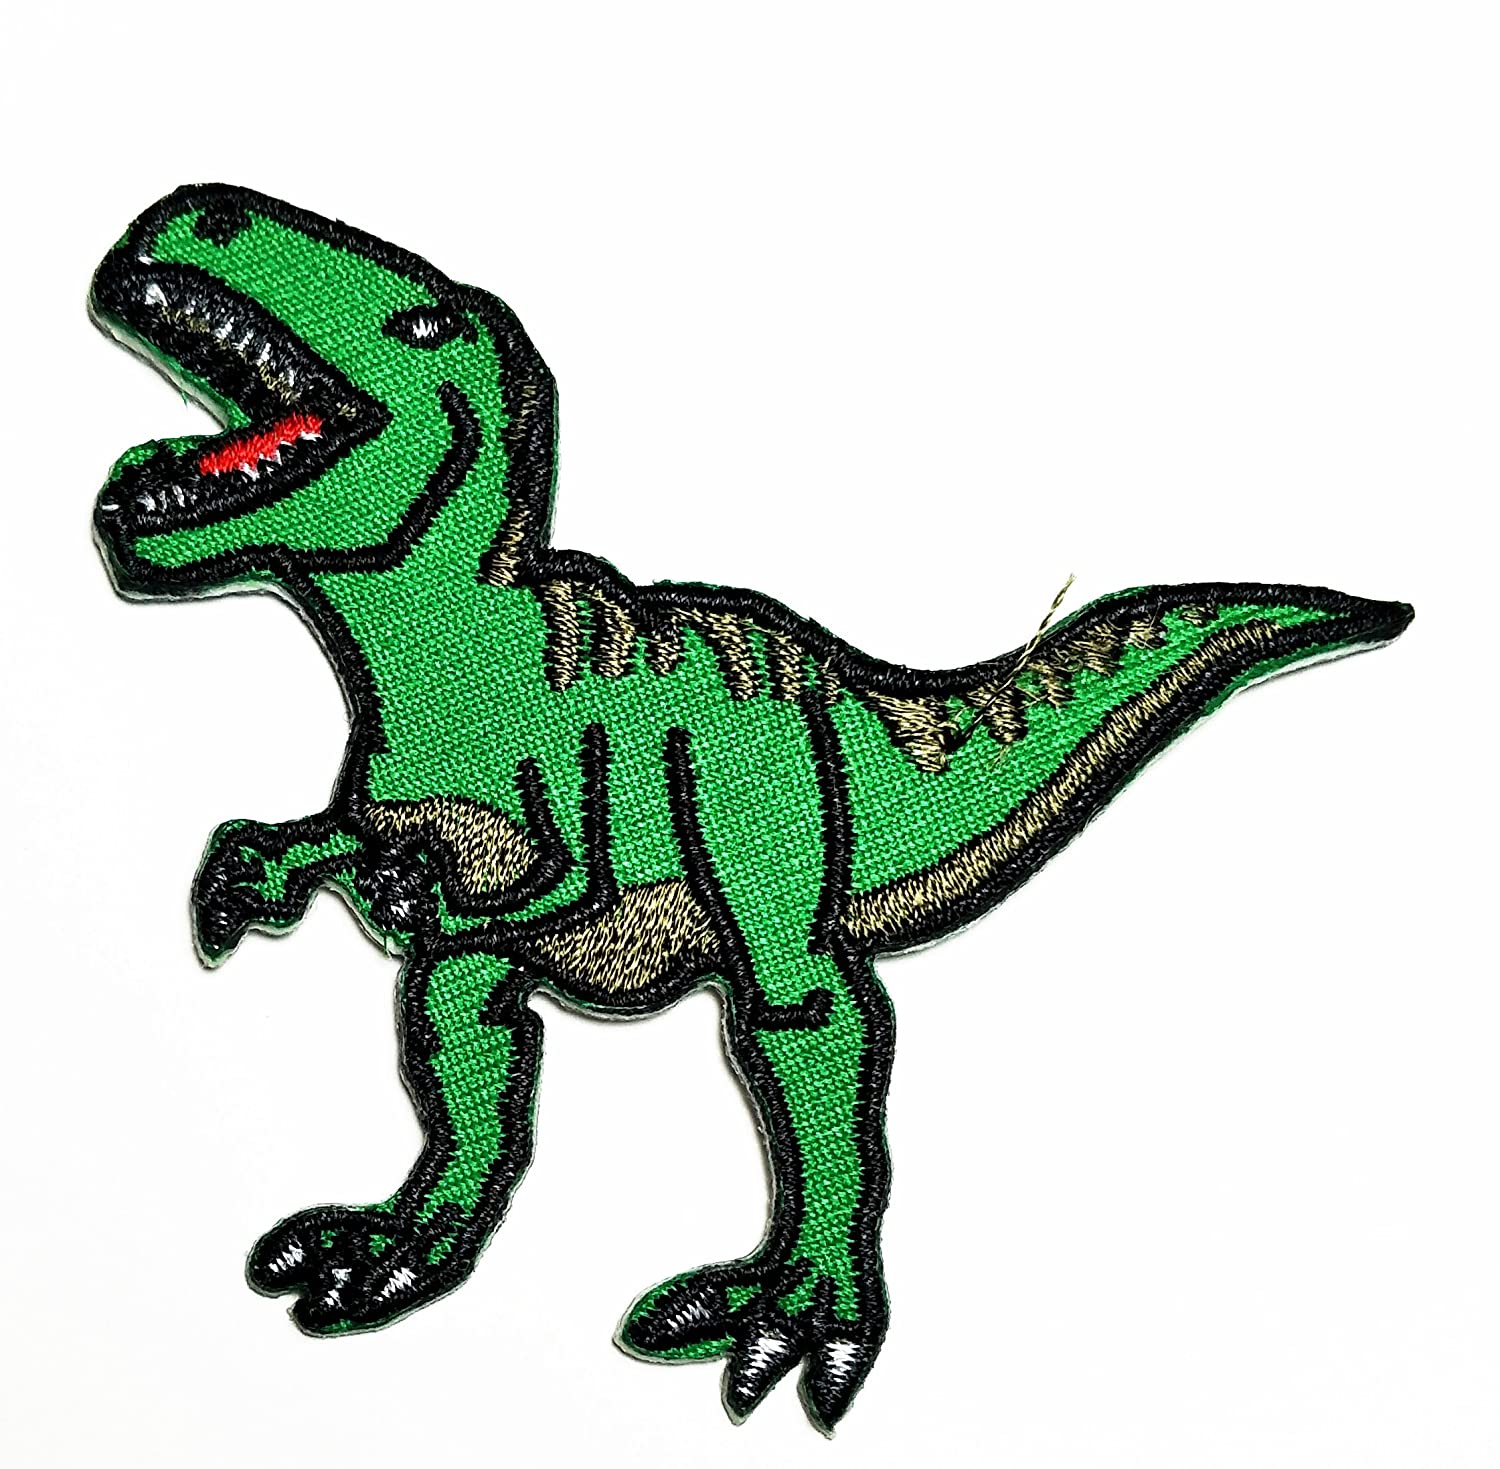 HHO T Rex Dinosaur Animal Kid Baby Boy Girl Patch Embroidered DIY Patches, Cute Applique Sew Iron on Kids Craft Patch for Bags Jackets Jeans Clothes